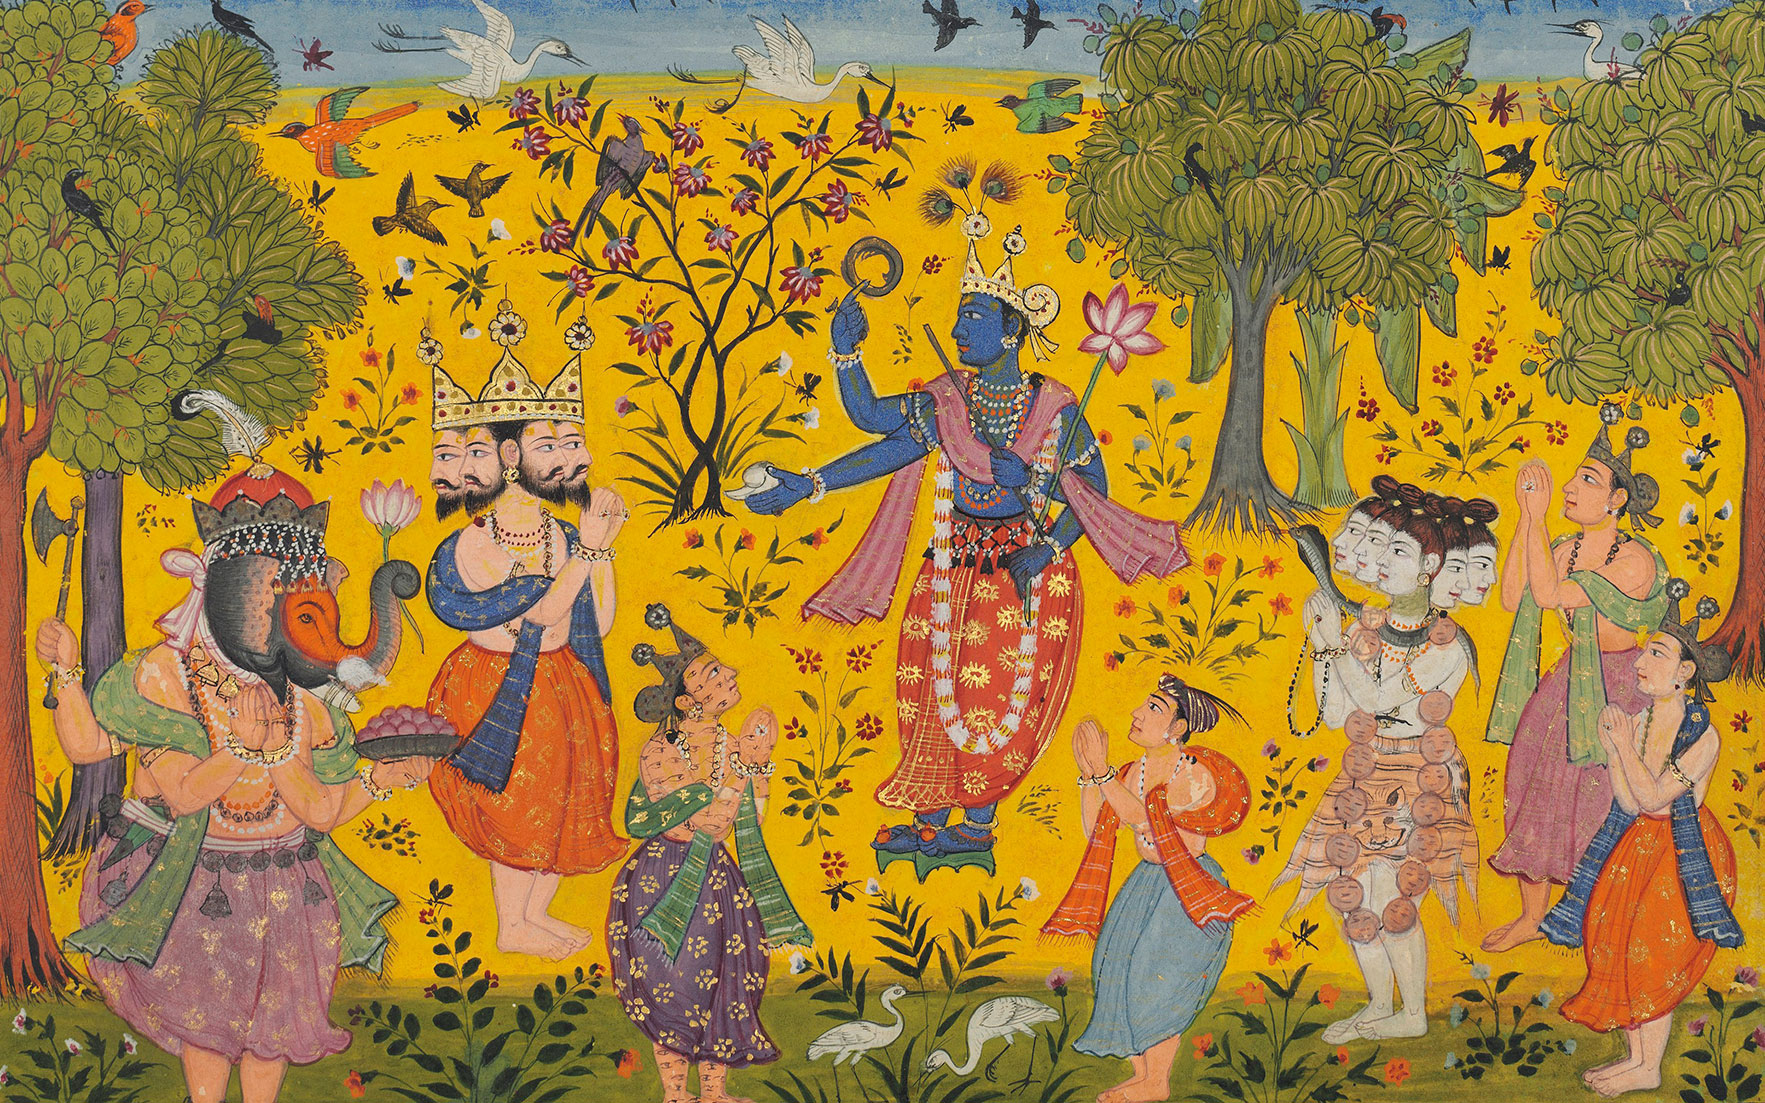 Detail from an illustration to a Ragmala series Shankara Ragaputra of Megha Raga, sub-imperial Mughal, North India, c. 1610-20. 8⅝ x 11¾ in (21.8 x 29.9 cm). Sold for £21,250